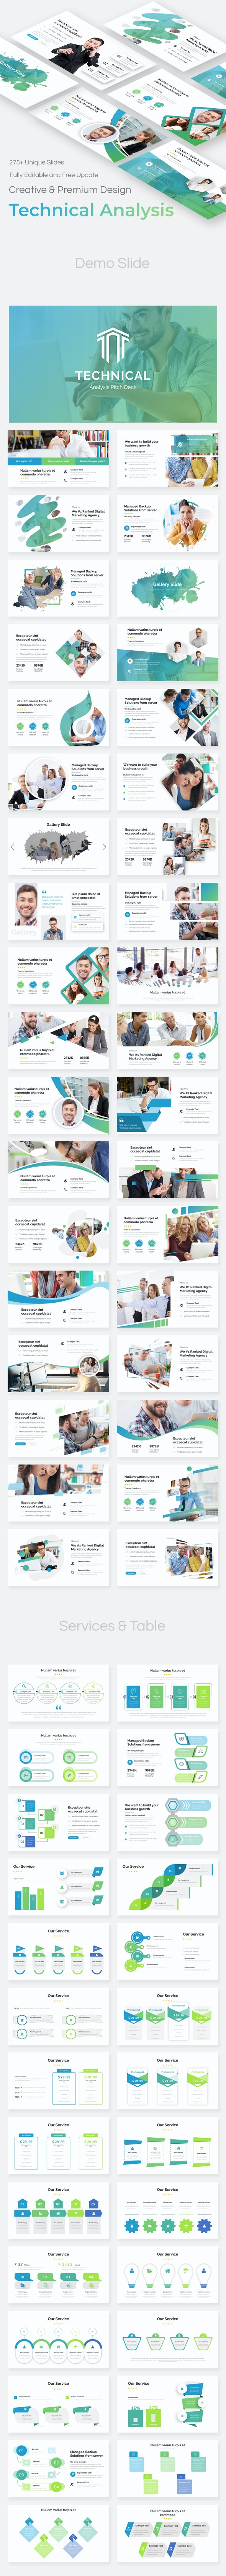 Technical Analysis Pitch Deck Powerpoint Template - Business PowerPoint Templates